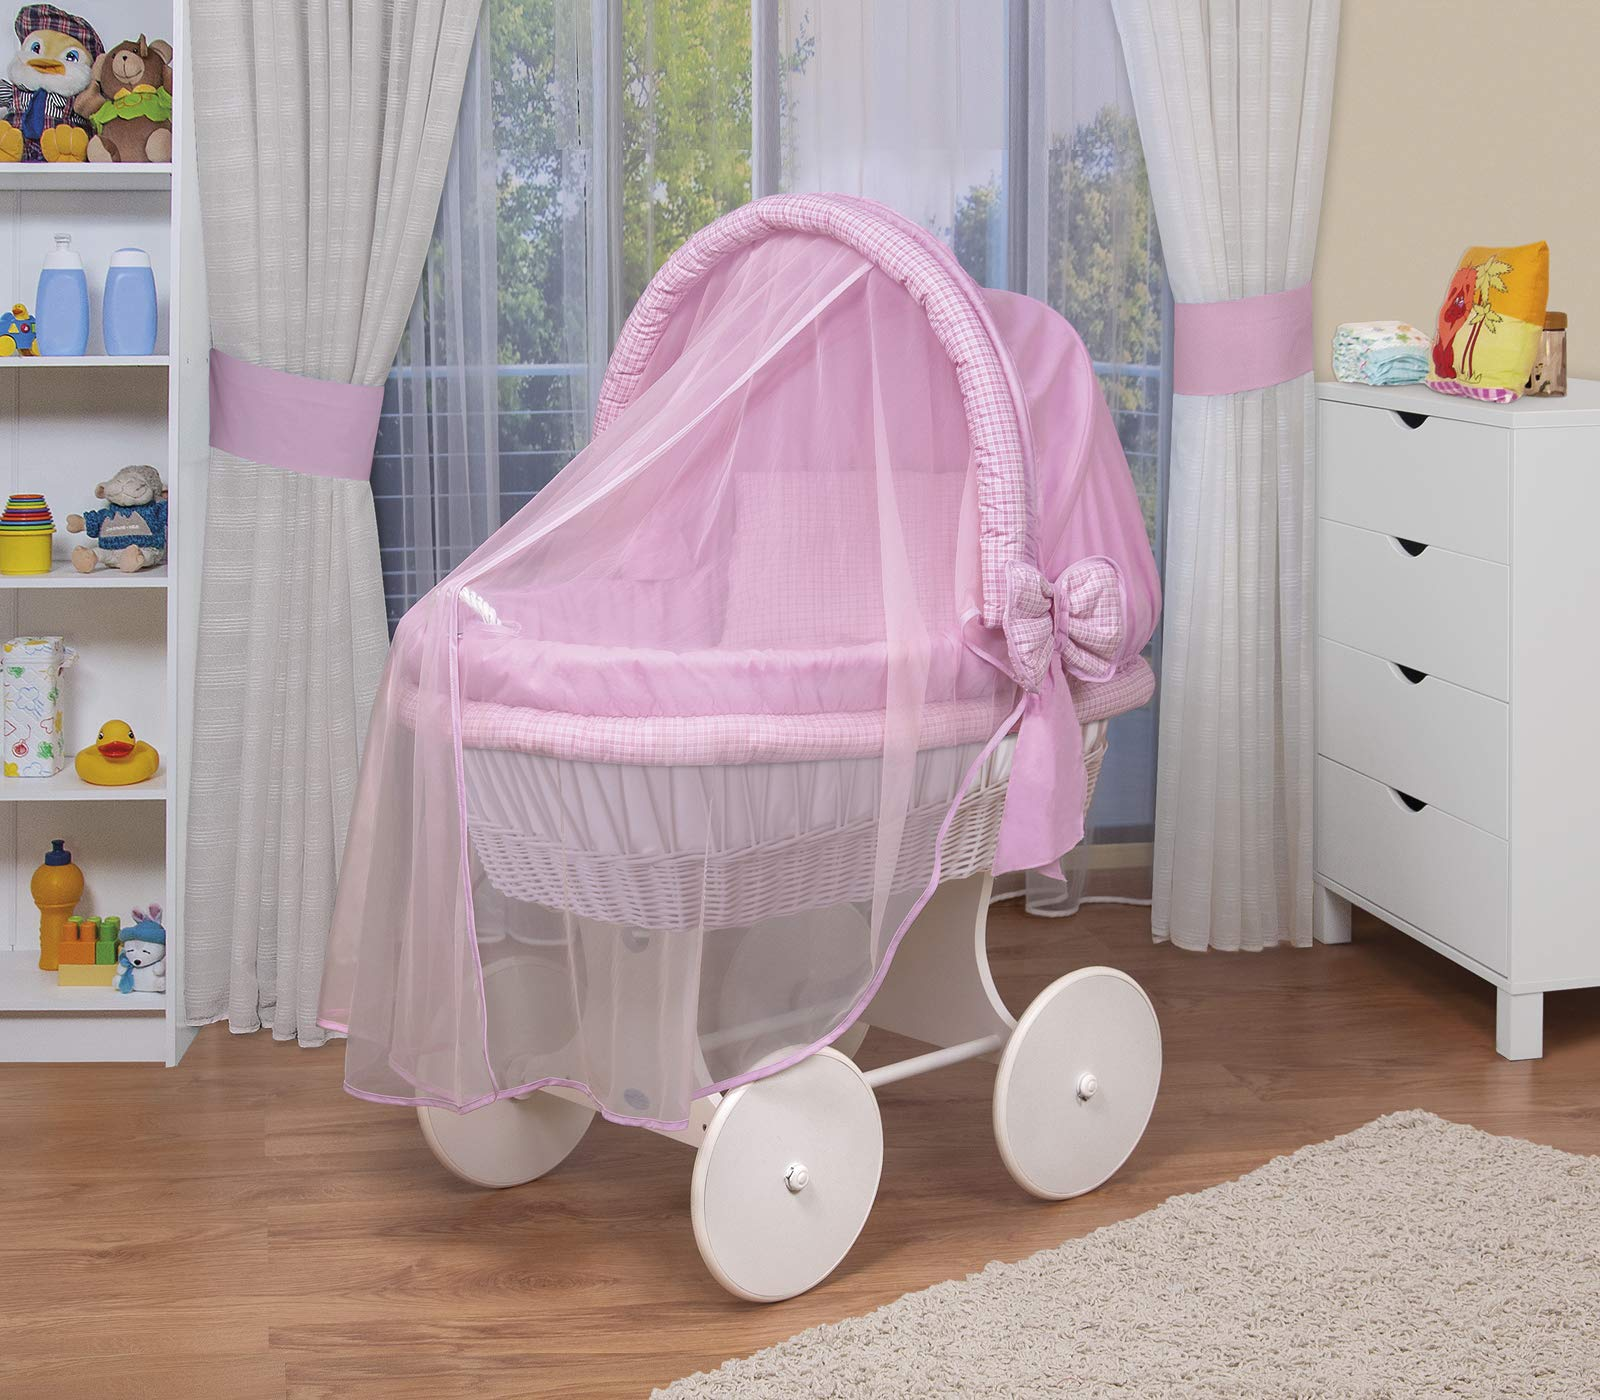 WALDIN Baby wicker cradle,Moses basket,44 models available,white painted stand/wheels,textile colour pink/squared WALDIN For more models and colours on Amazon click on WALDIN under the title Bassinet complete with bedding and stand Certified to safety standard EN 1130-1/2 2